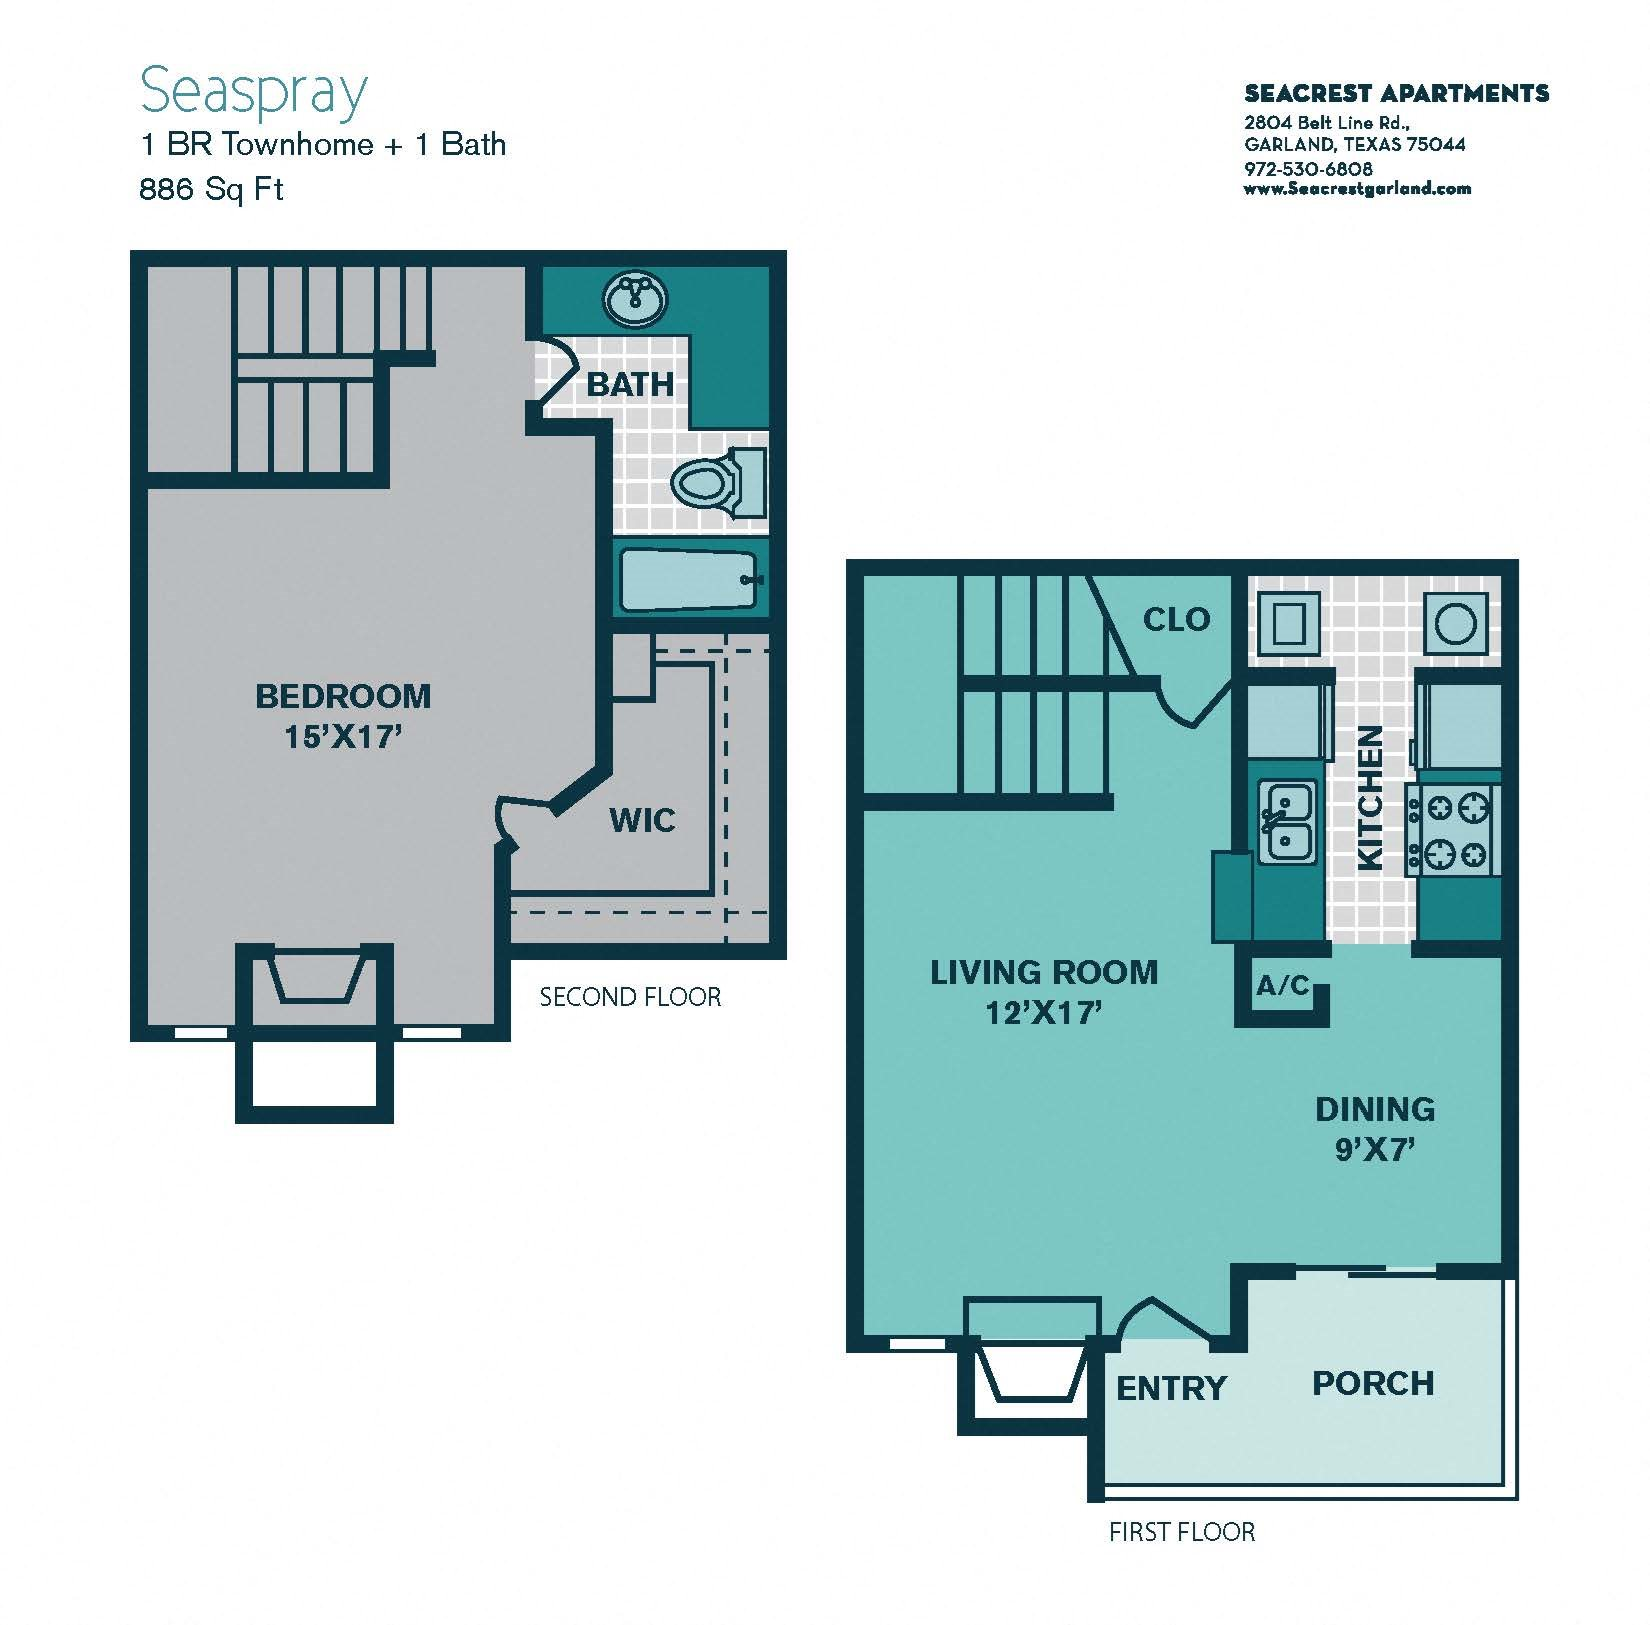 Apartments In Garland: Floor Plans Of Seacrest Apartments In Garland, TX